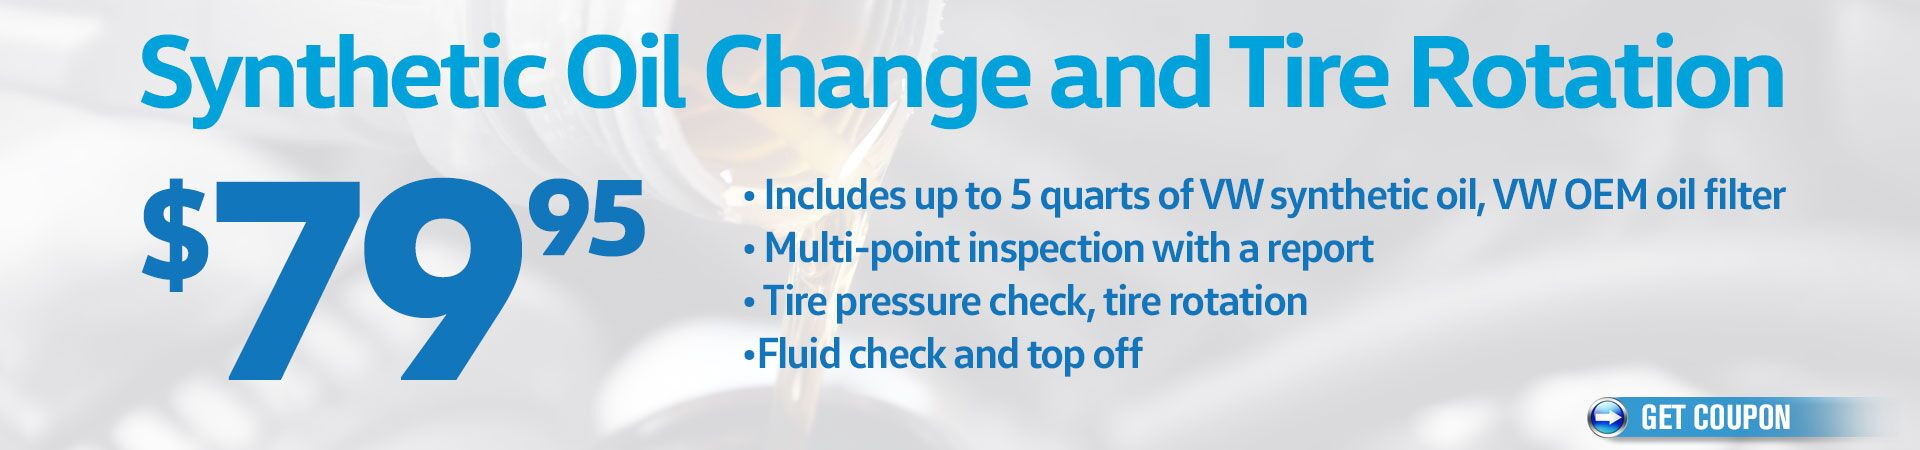 Synthetic Oil Change and Tire Rotation